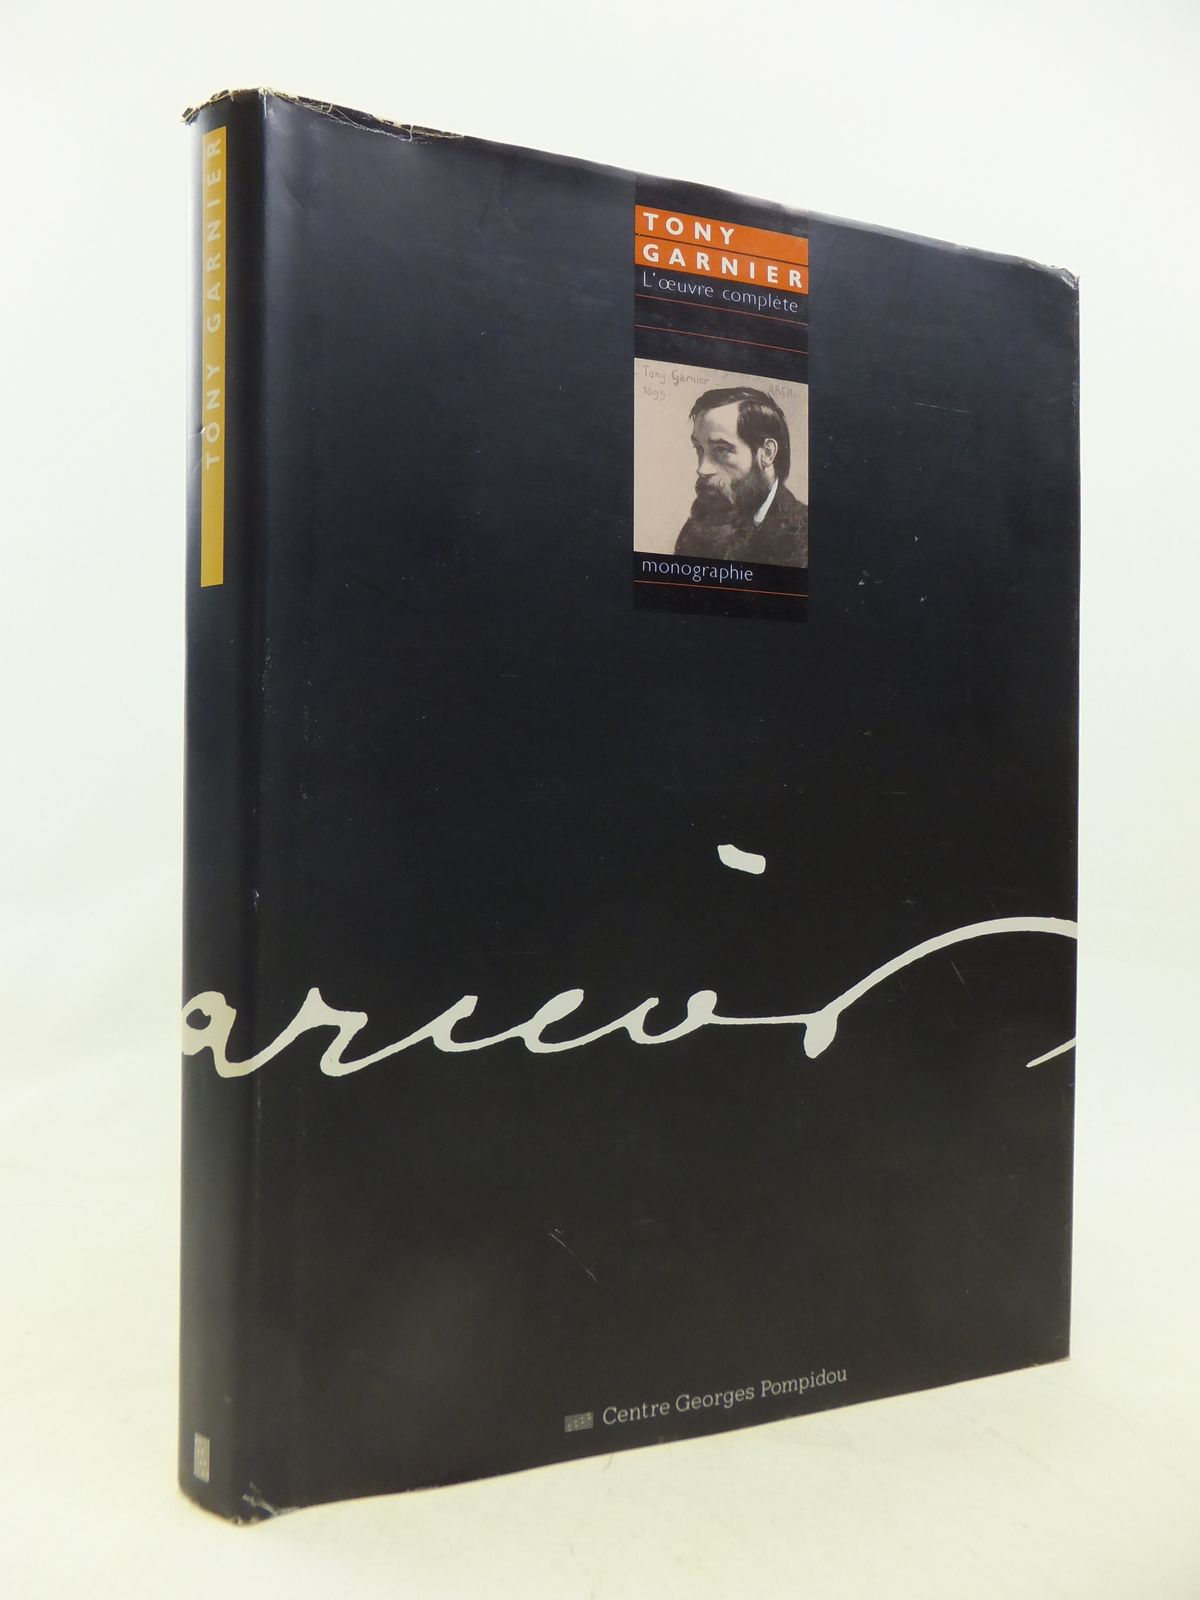 Photo of TONY GARNIER L'OEUVRE COMPLETE written by Guiheux, Alain<br />Cinqualbre, Olivier published by Centre Georges Pompidou (STOCK CODE: 1809368)  for sale by Stella & Rose's Books